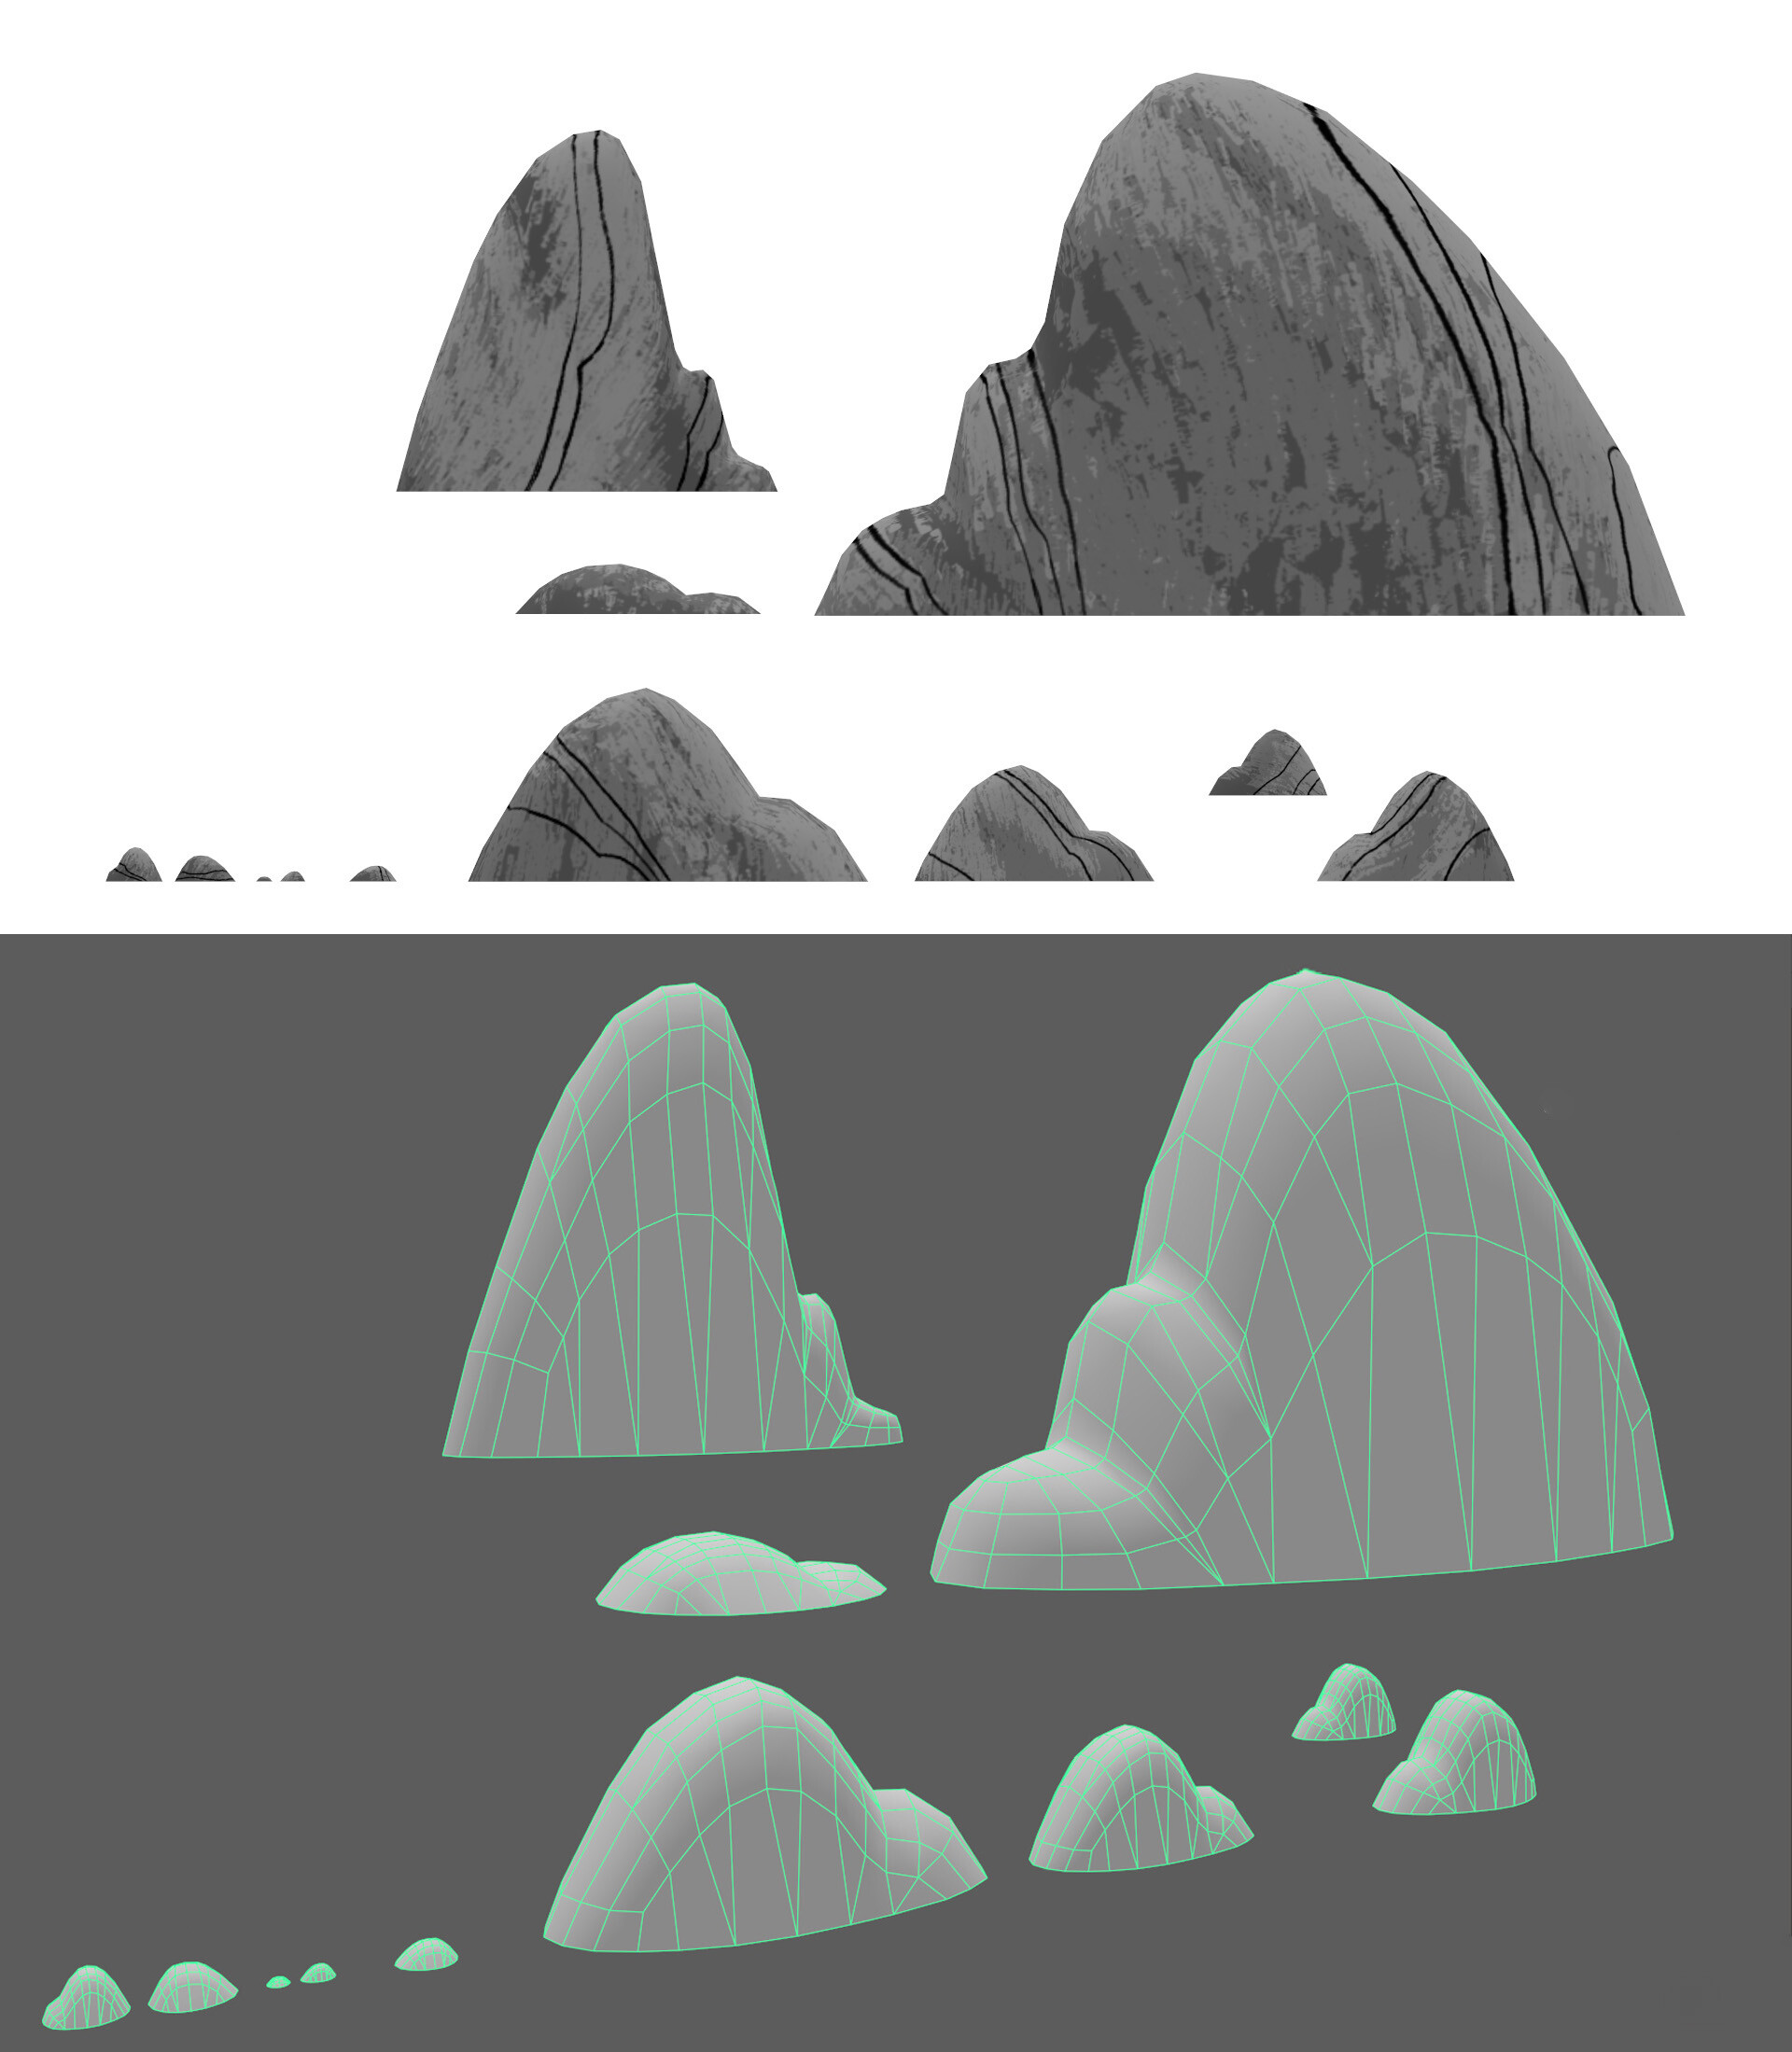 Flat render and wireframe of rocks